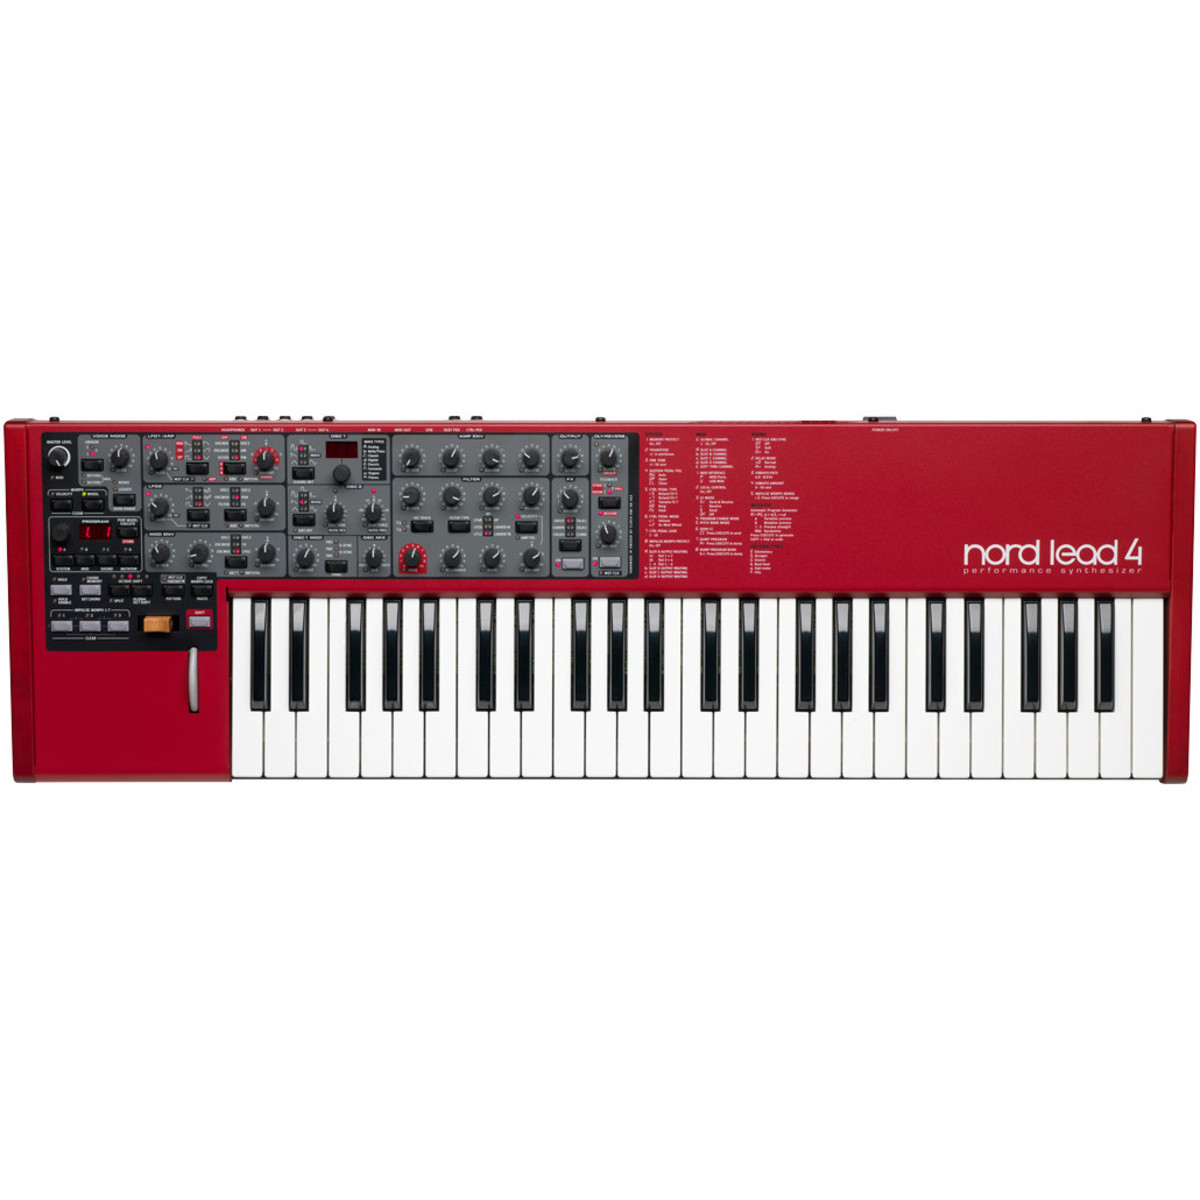 nord lead 4 performance synthesizer keyboard at gear4music. Black Bedroom Furniture Sets. Home Design Ideas